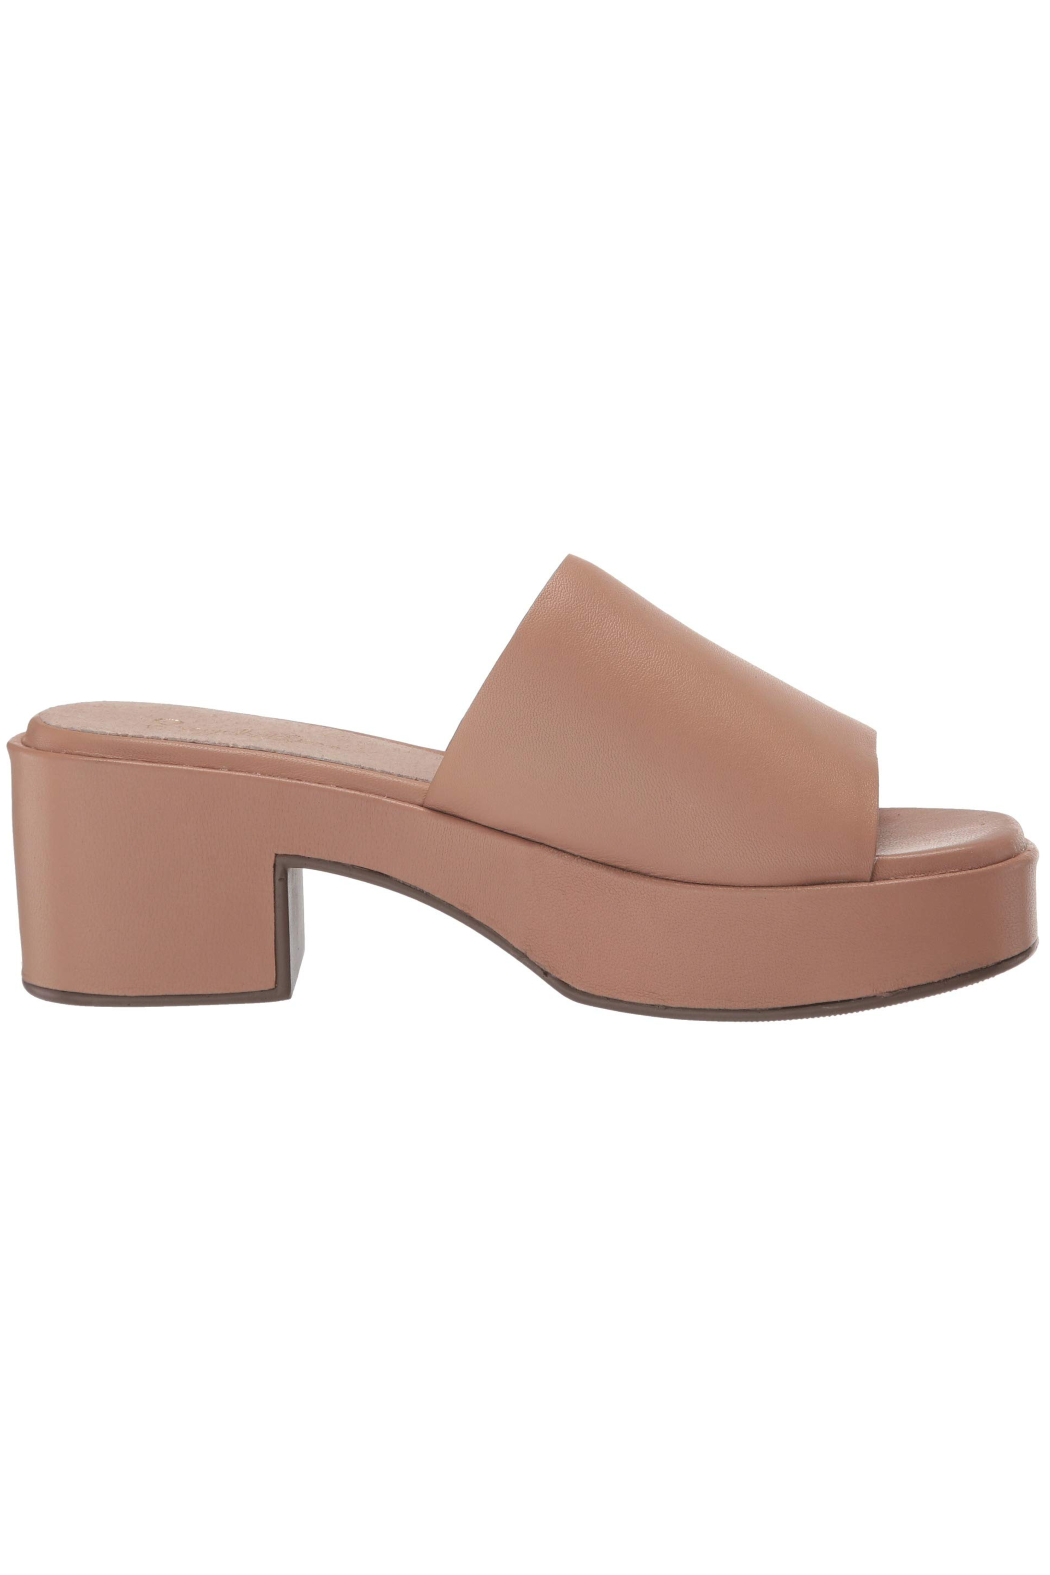 Seychelles One Of A Kind Heeled Slide - Front Full Image